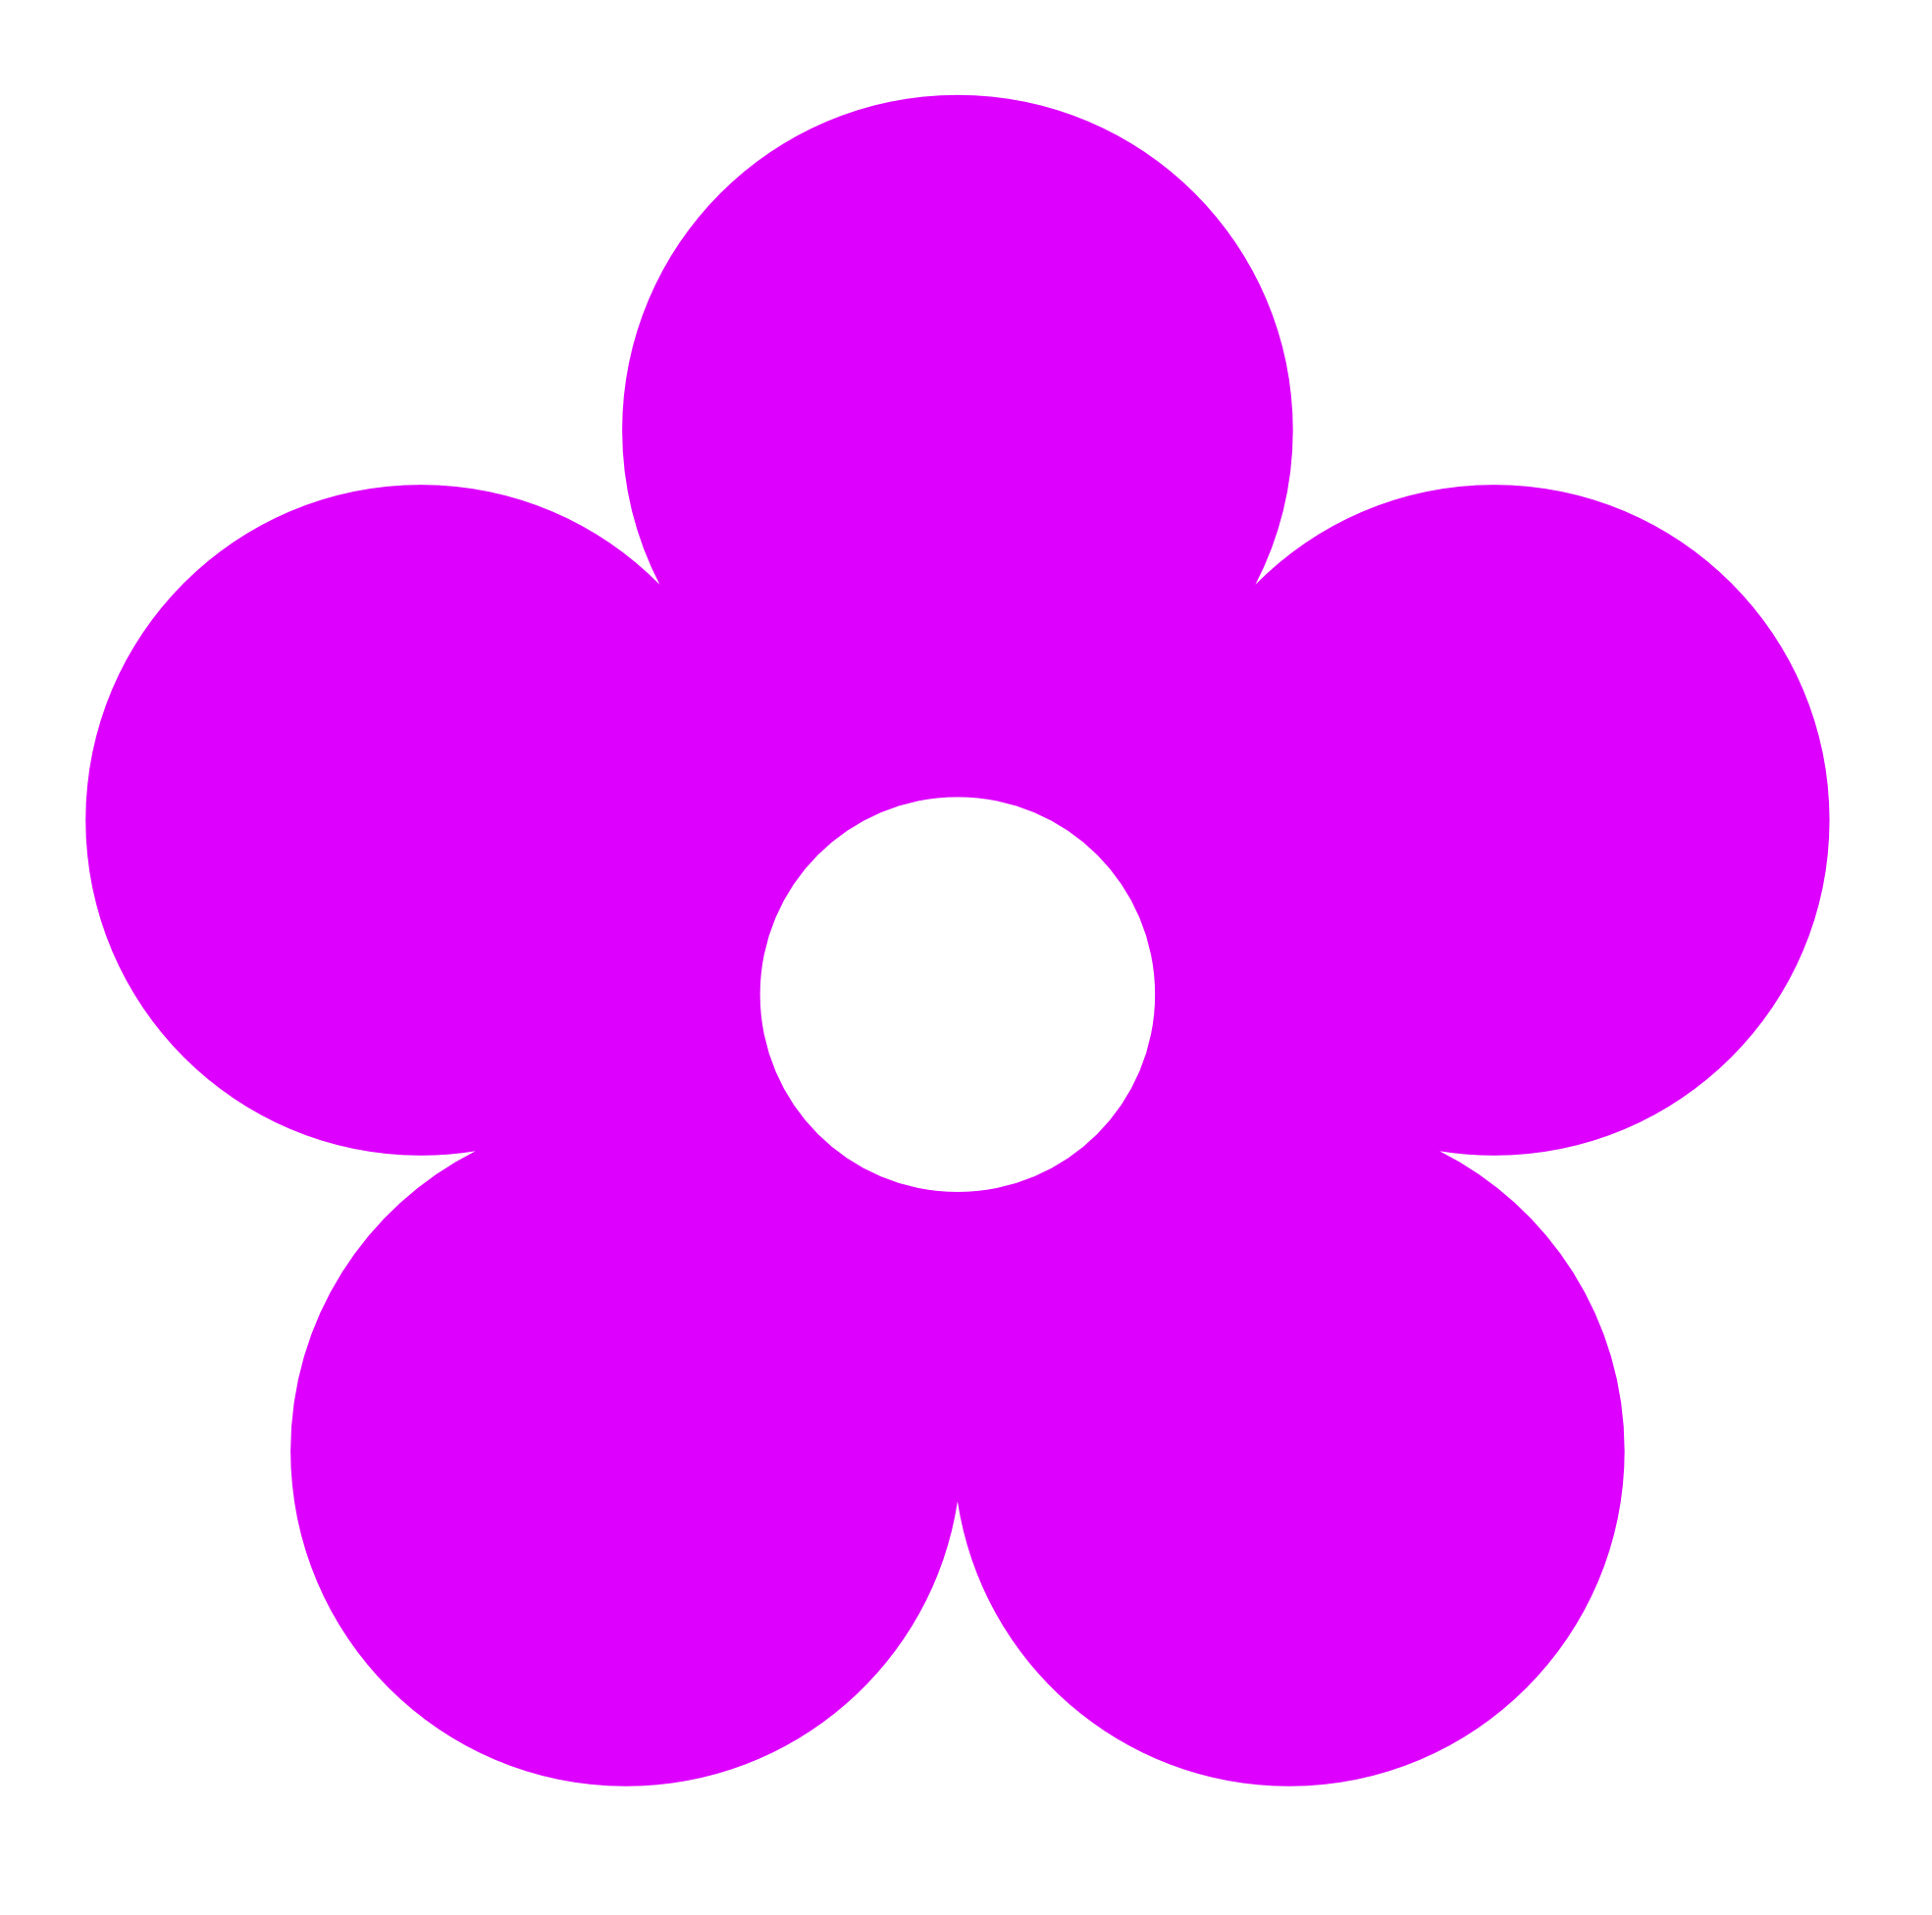 Flower clip art panda. Square clipart neon purple